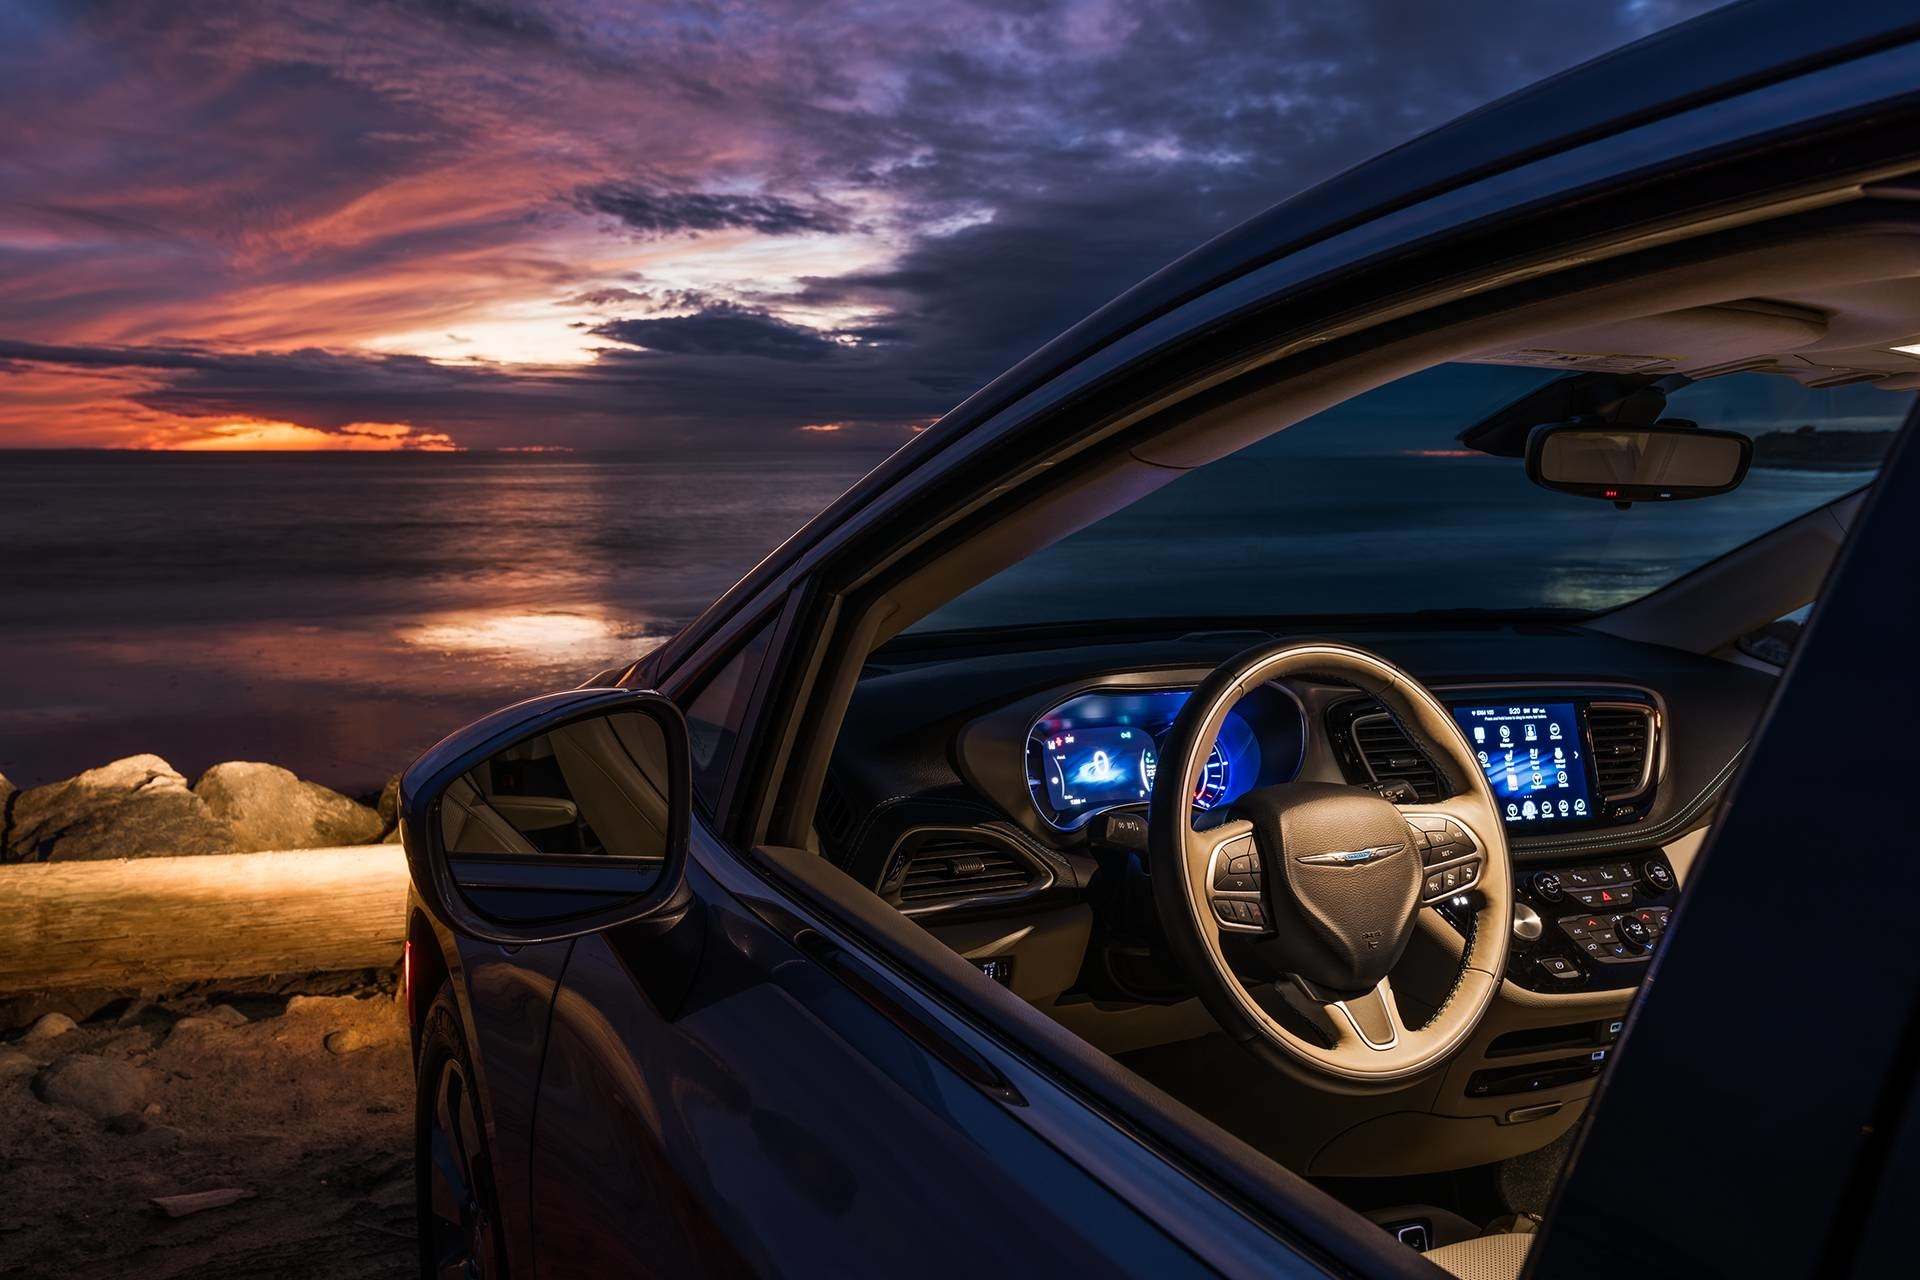 2019 Chrysler Pacifica Hybrid interior showing 7-inch full-colour in-cluster display and Uconnect NAV